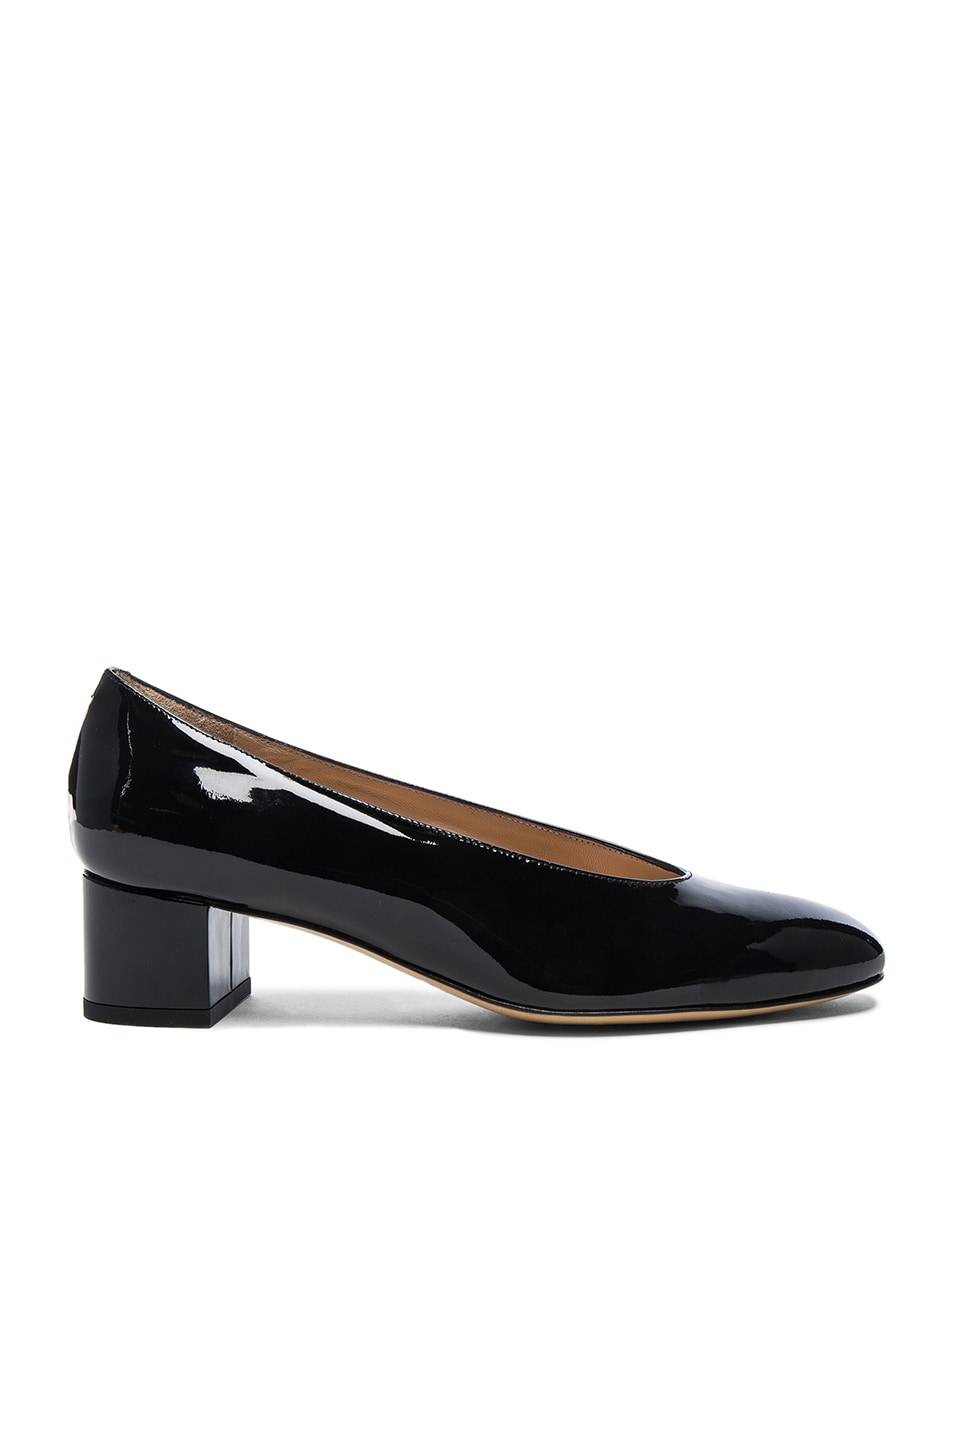 7f1f3aa365bf Image 1 of Mansur Gavriel Patent Leather Ballerina Pumps in Black